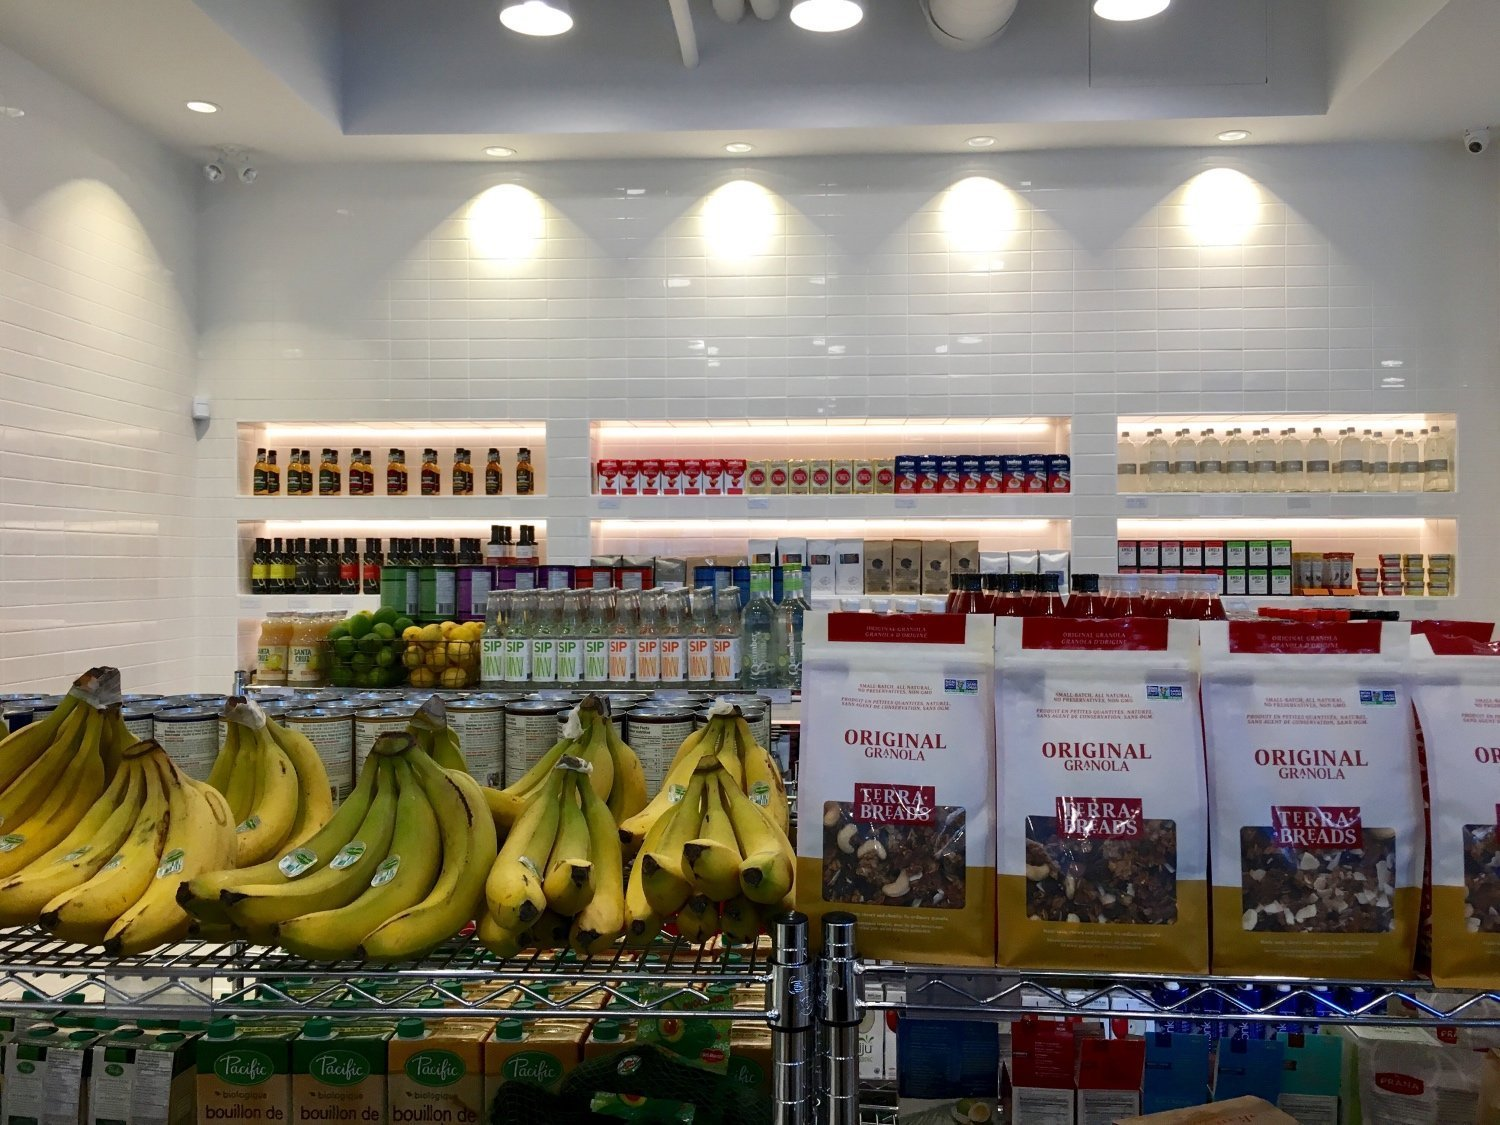 New cafe deli and grocer dalina now open in chinatown for What grocery stores are open today